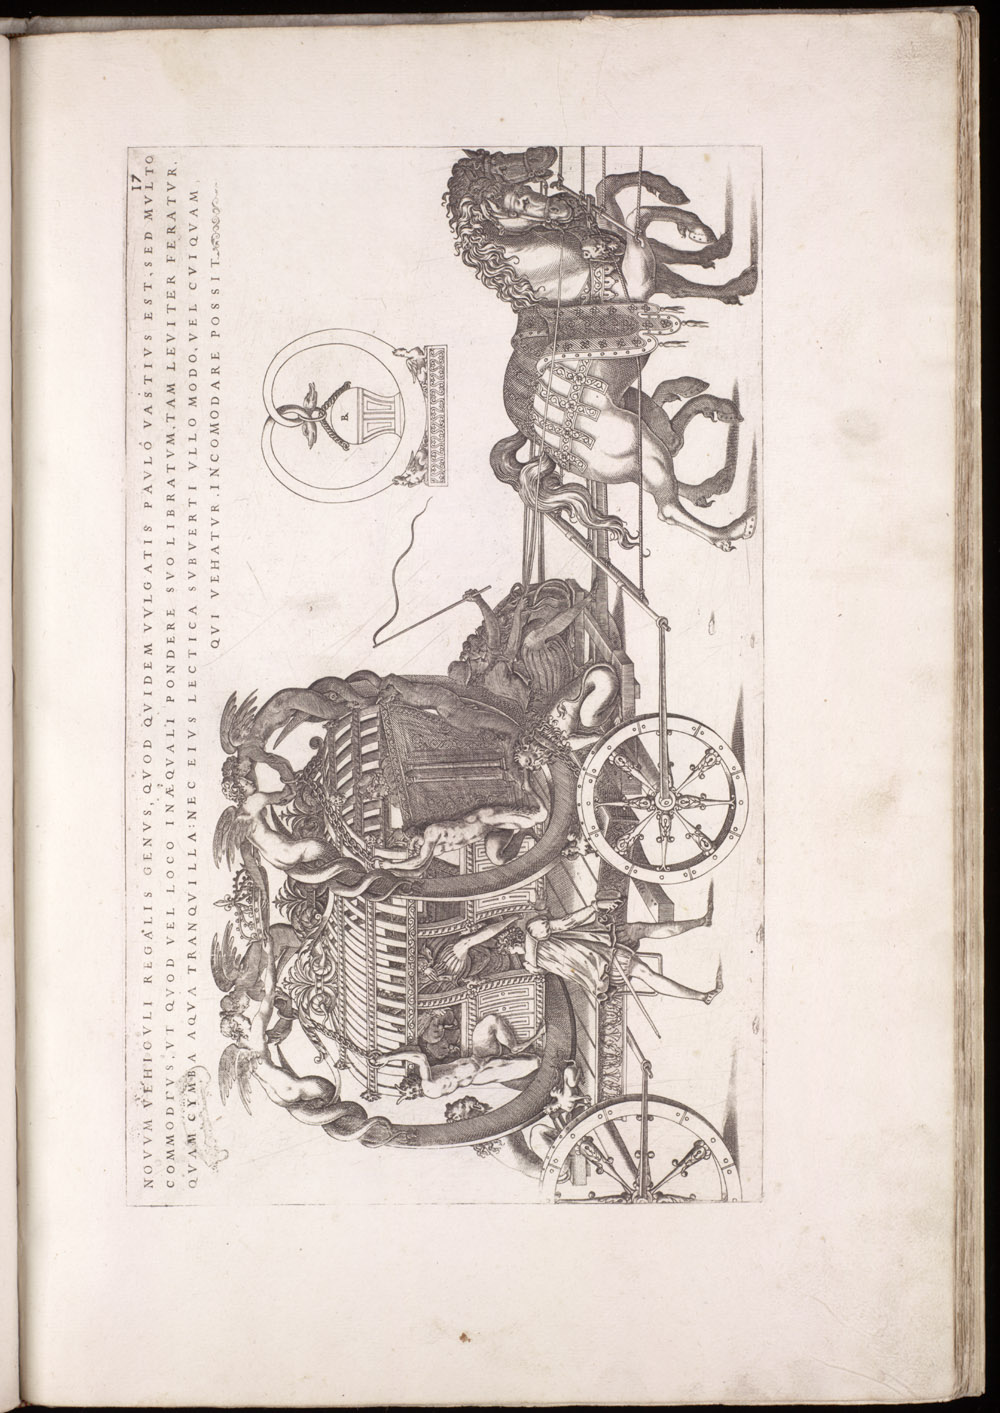 Plate 17 [Suspended horse-drawn carriage],  Image number:SIL4-2-67a